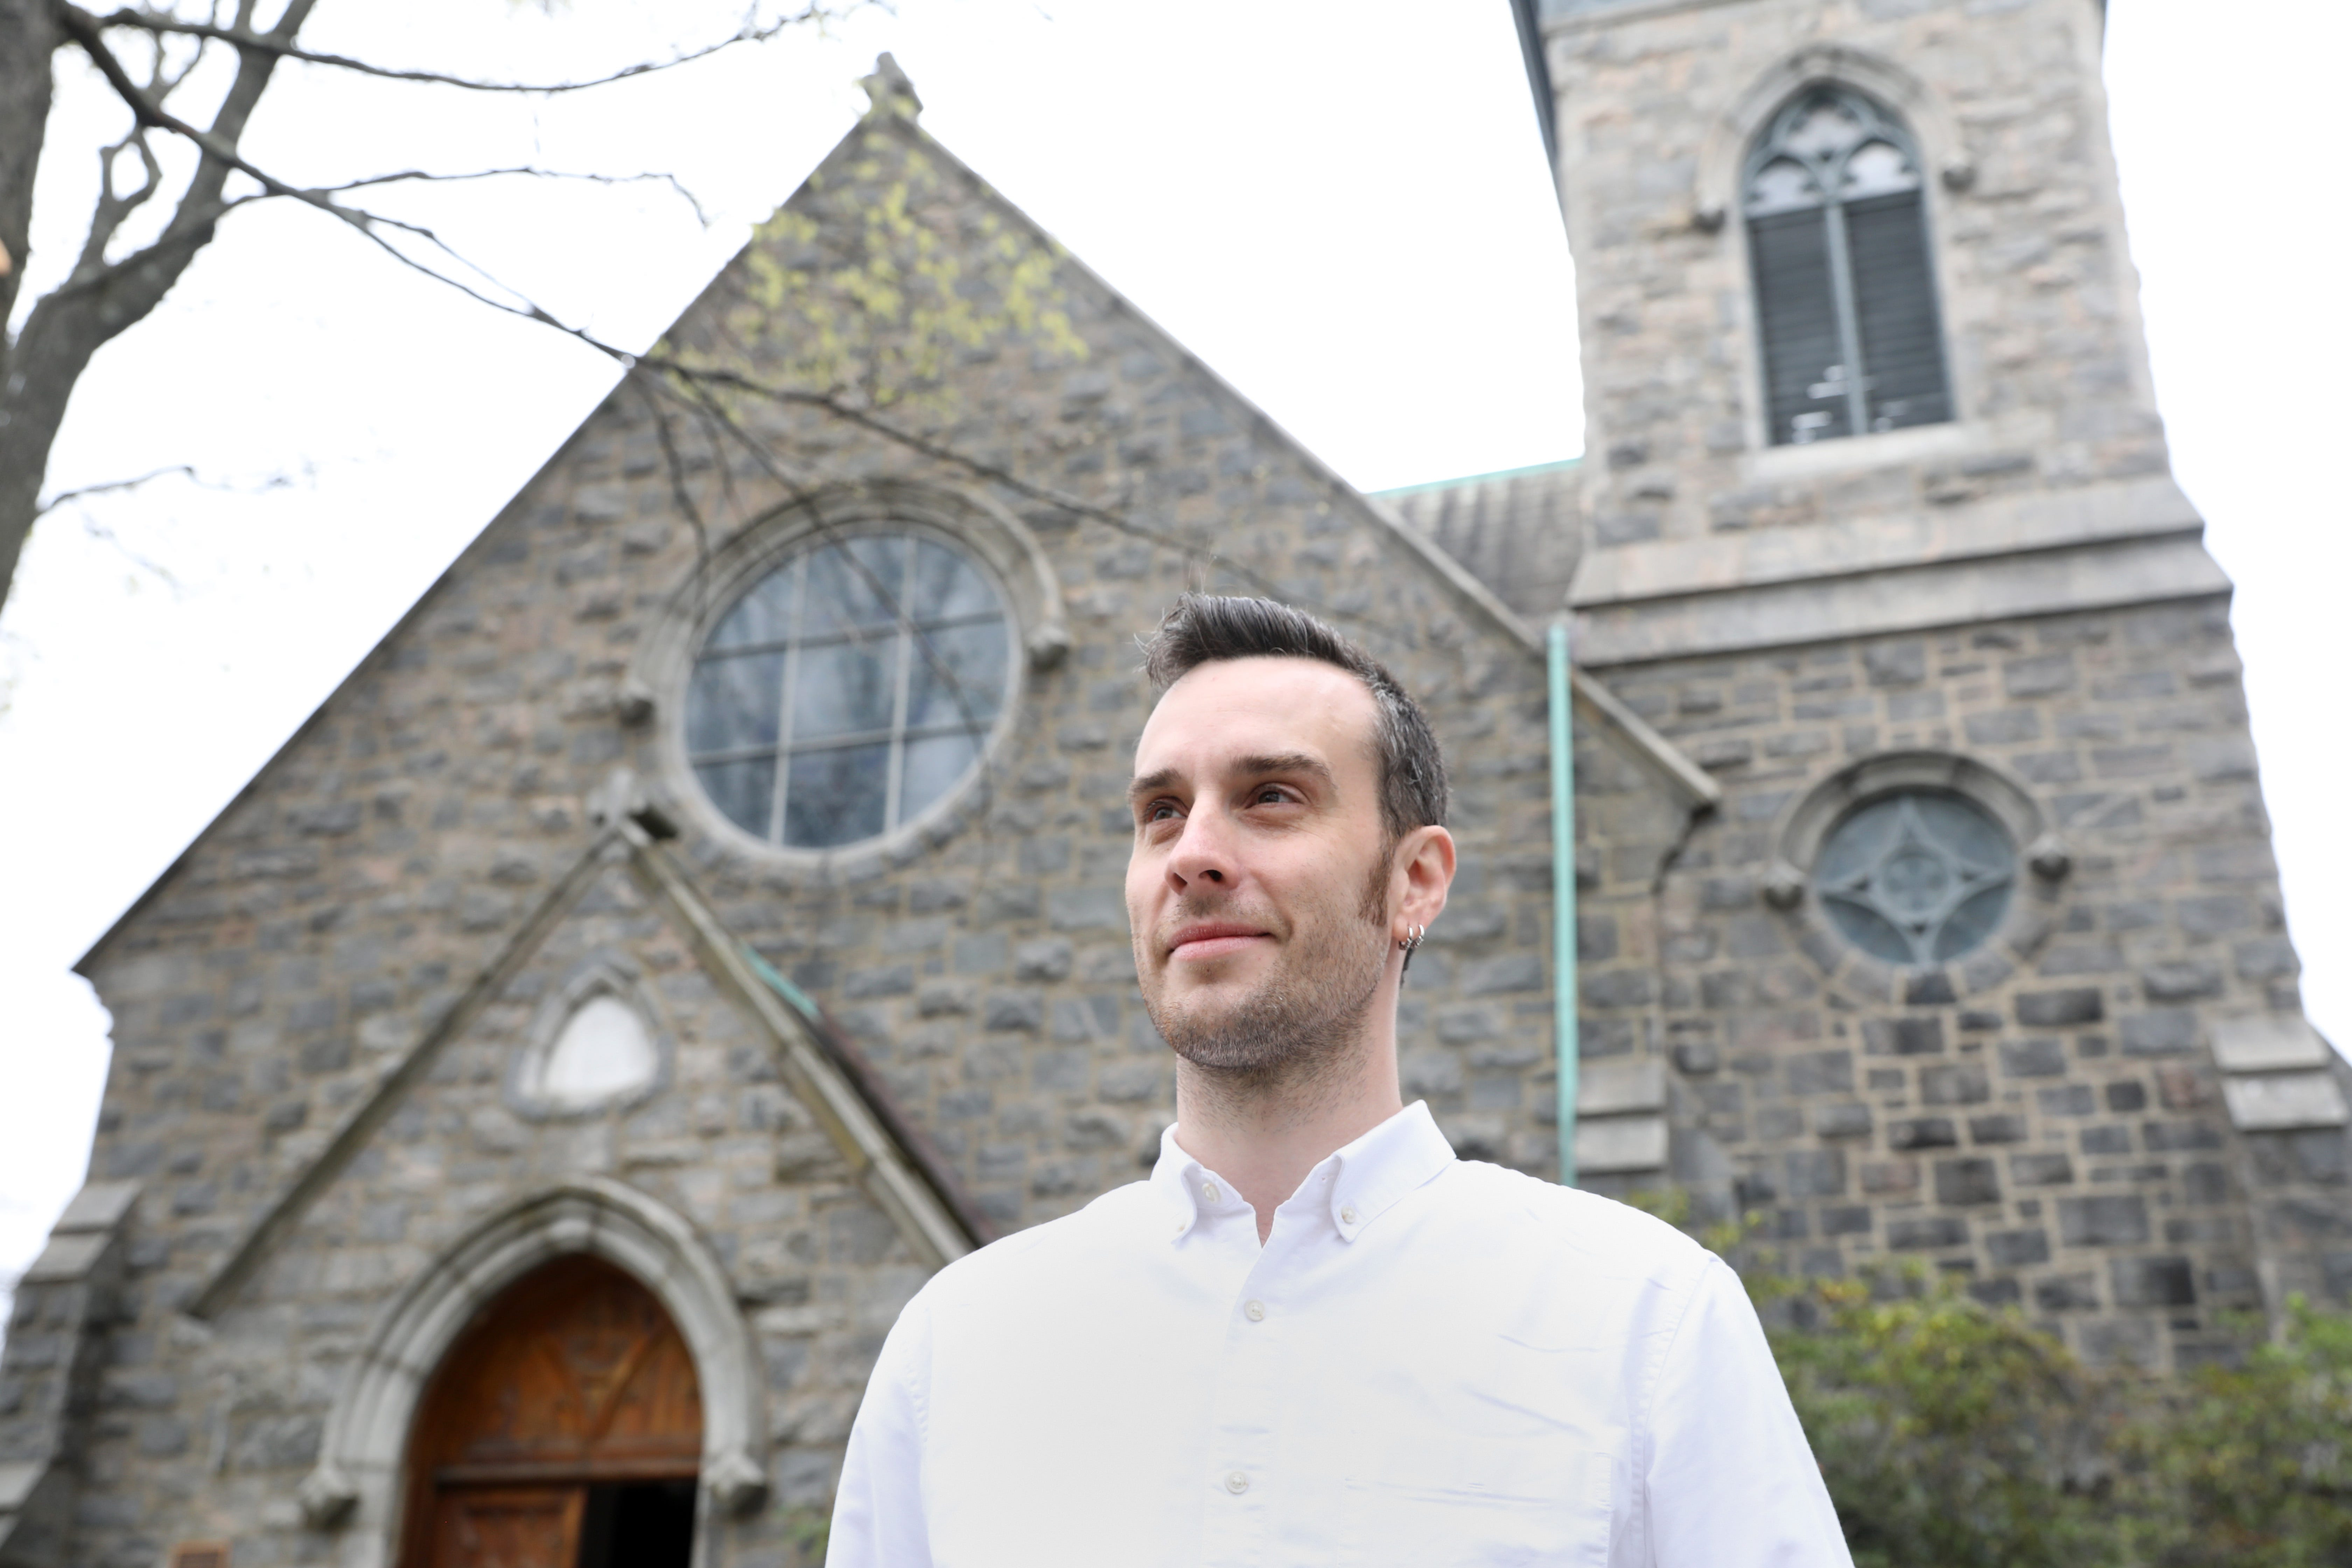 Video: Dobbs Ferry church to build sanctuary apartment for immigrants  facing deportation